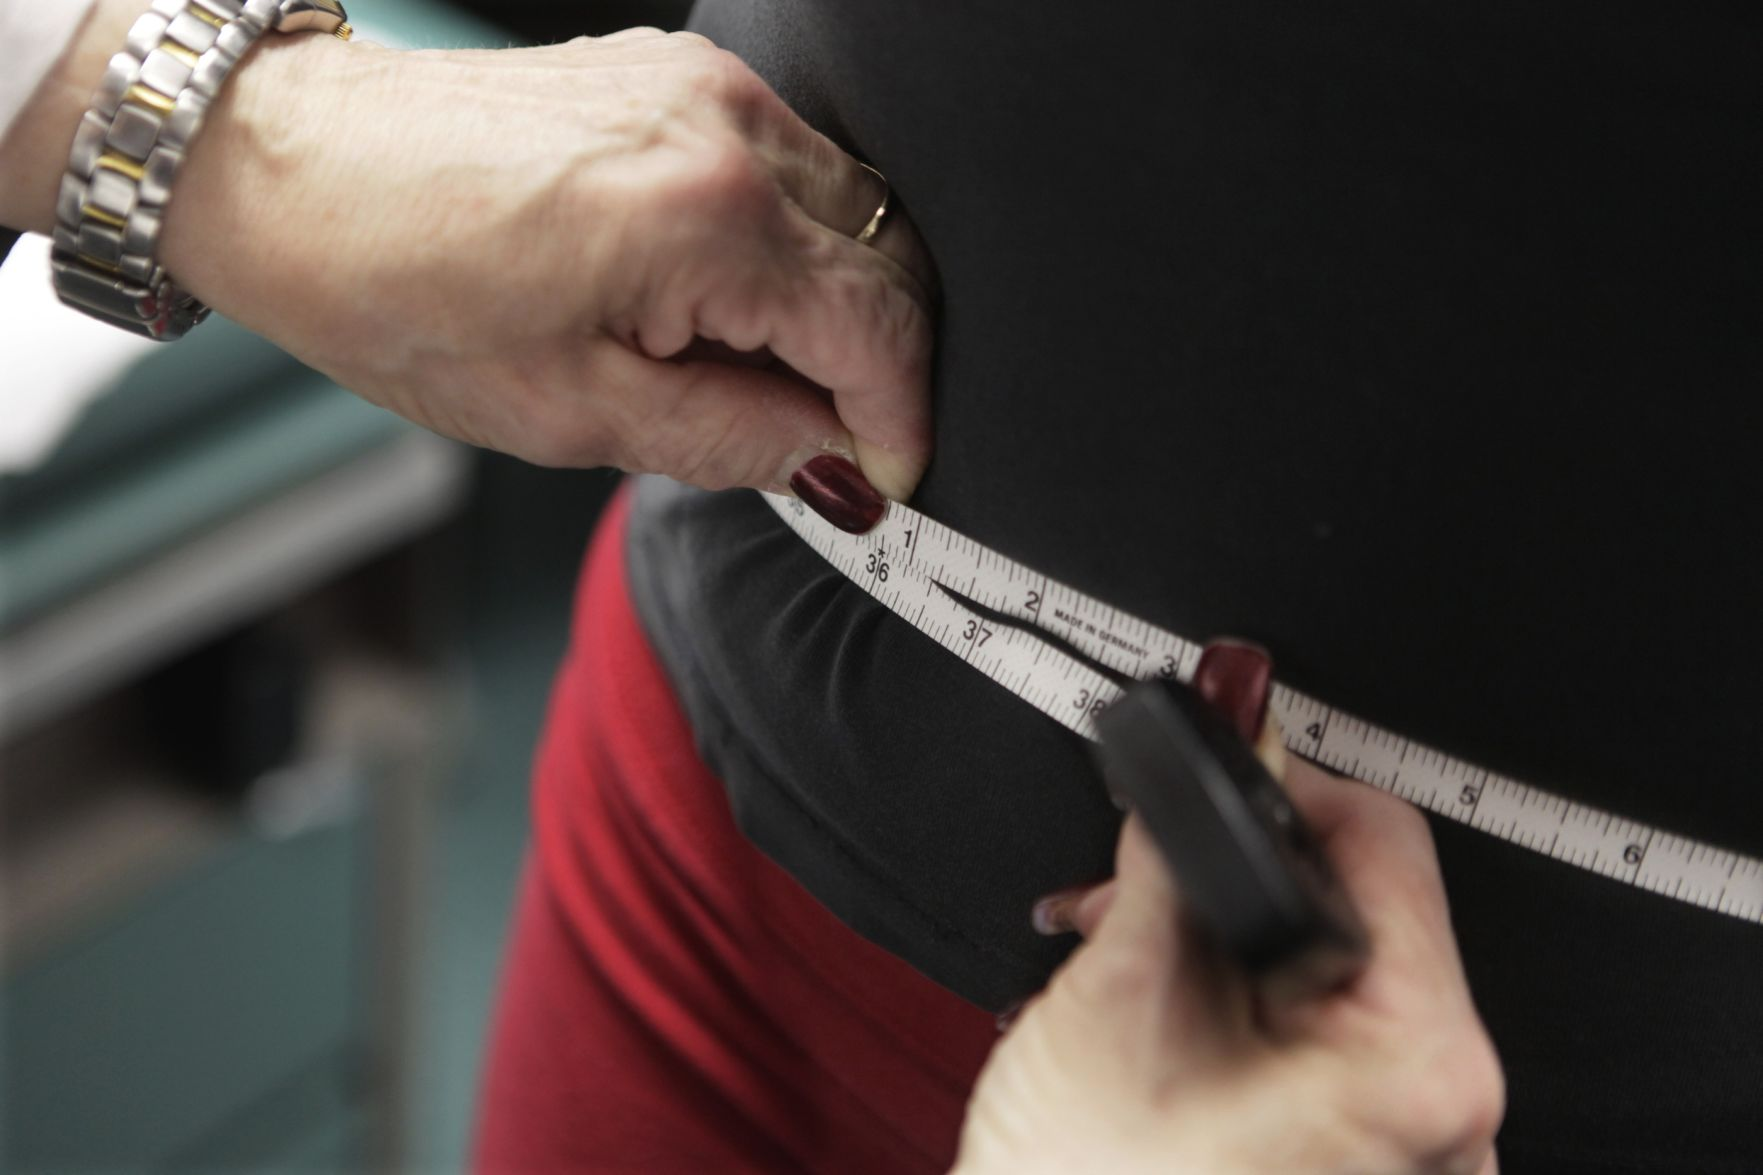 New Report Finds Progress to Prevent Obesity at Risk